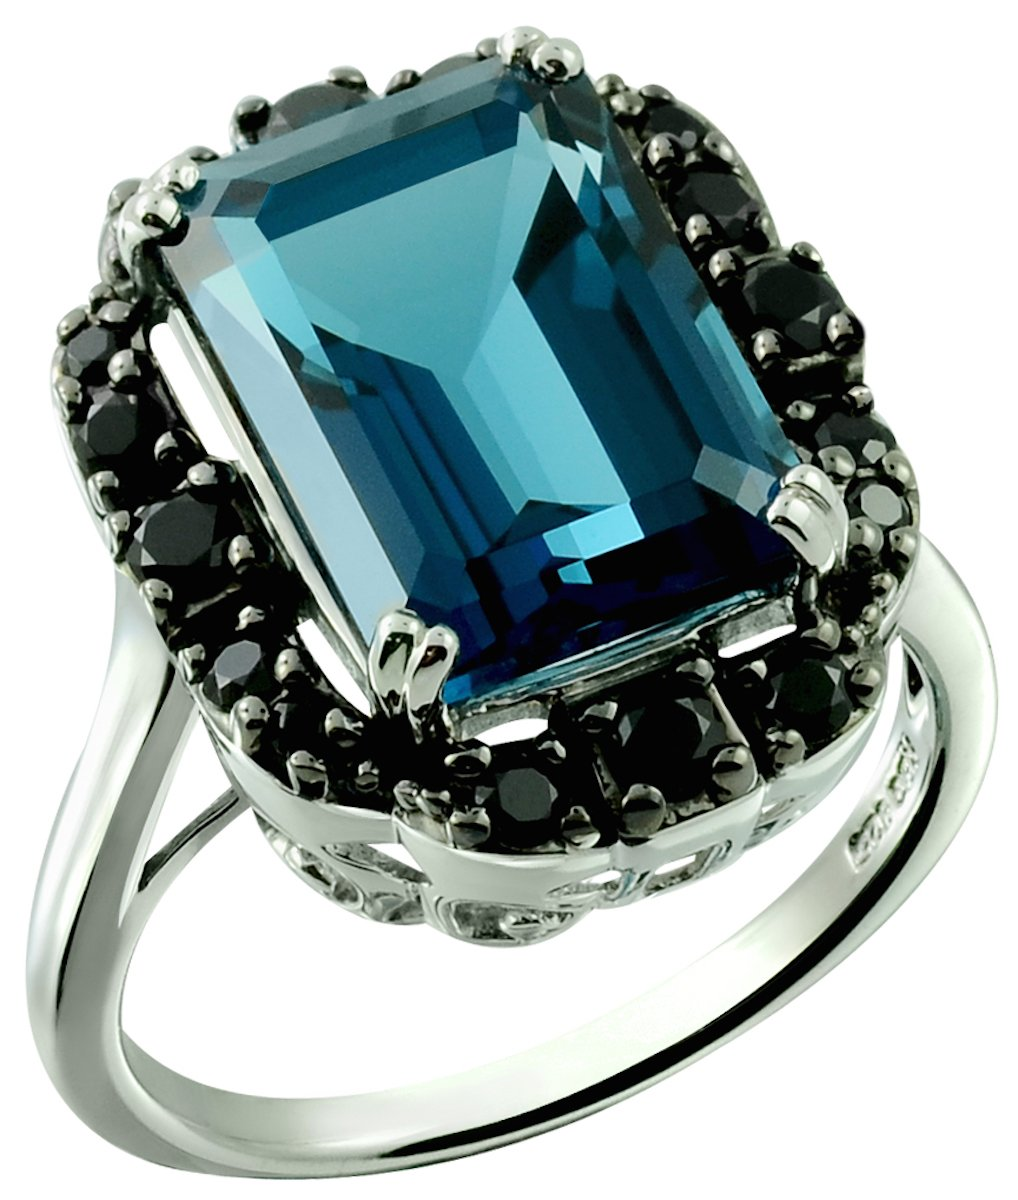 Sterling Silver 925 STATEMENT Ring GENUINE LONDON BLUE TOPAZ and BLACK SPINEL 10.60 Cts with RHODIUM-PLATED Finish (8) by RB Gems